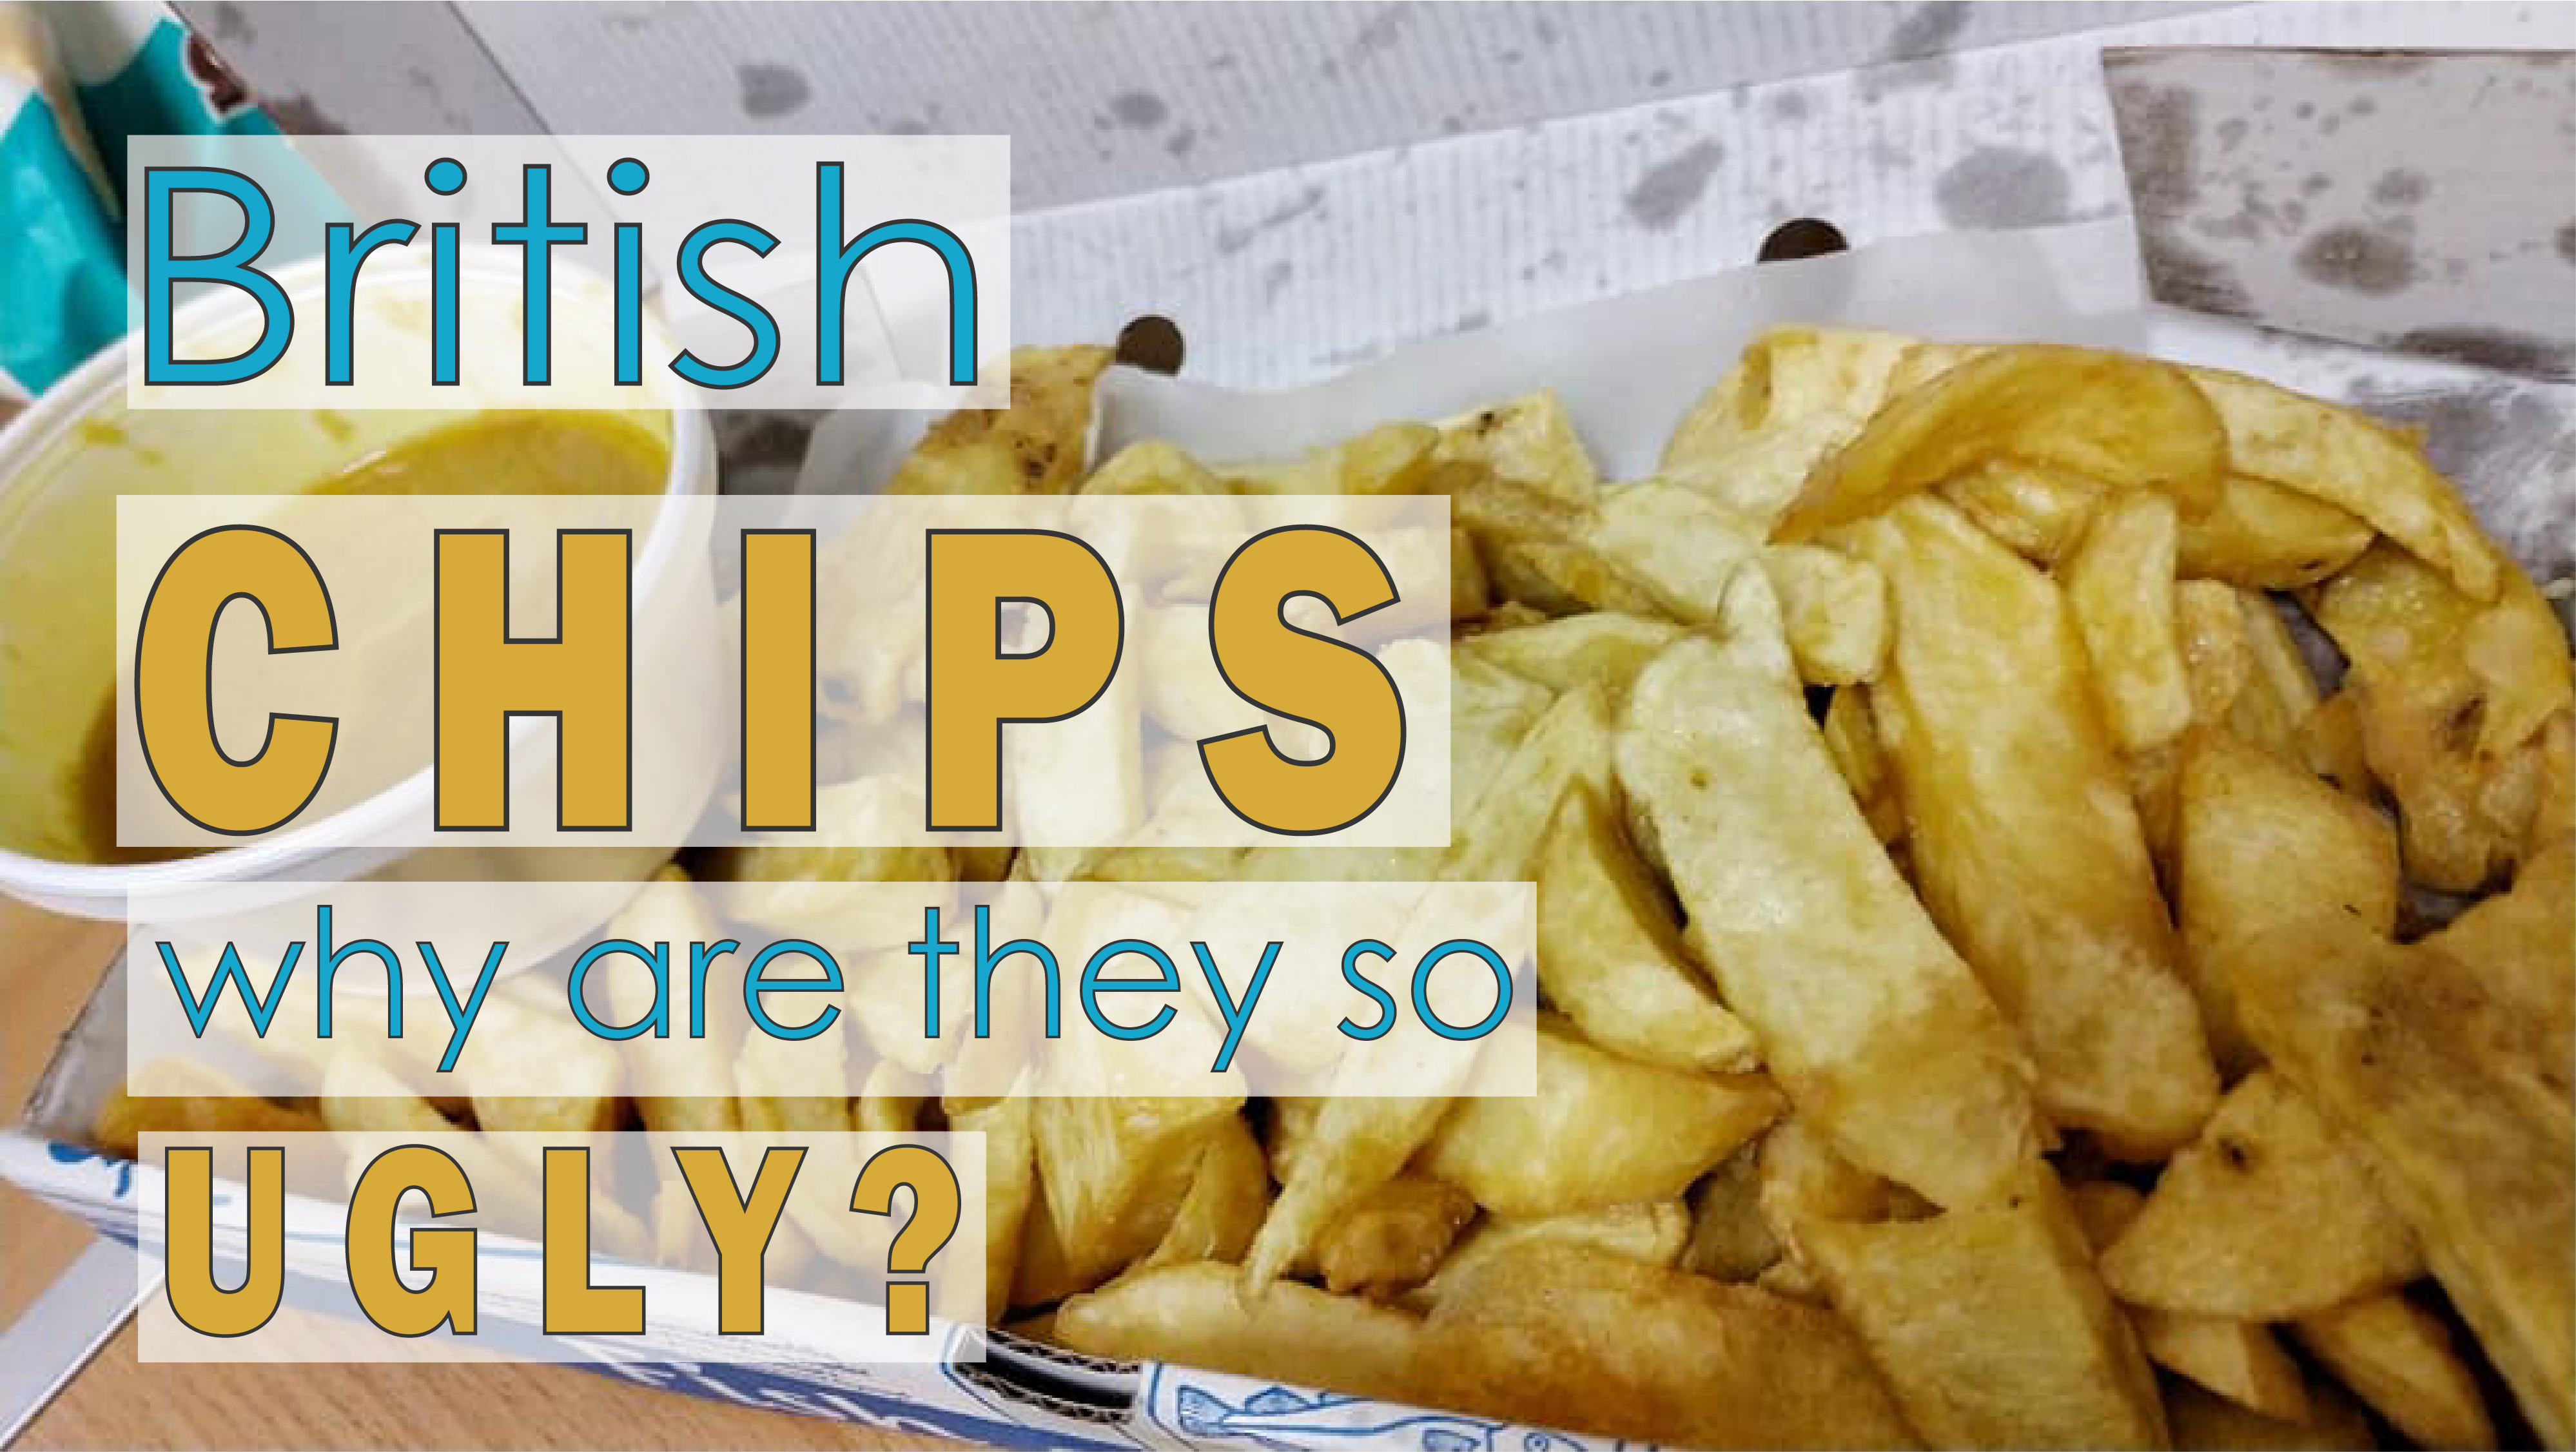 British Chips | Why are they so ugly?